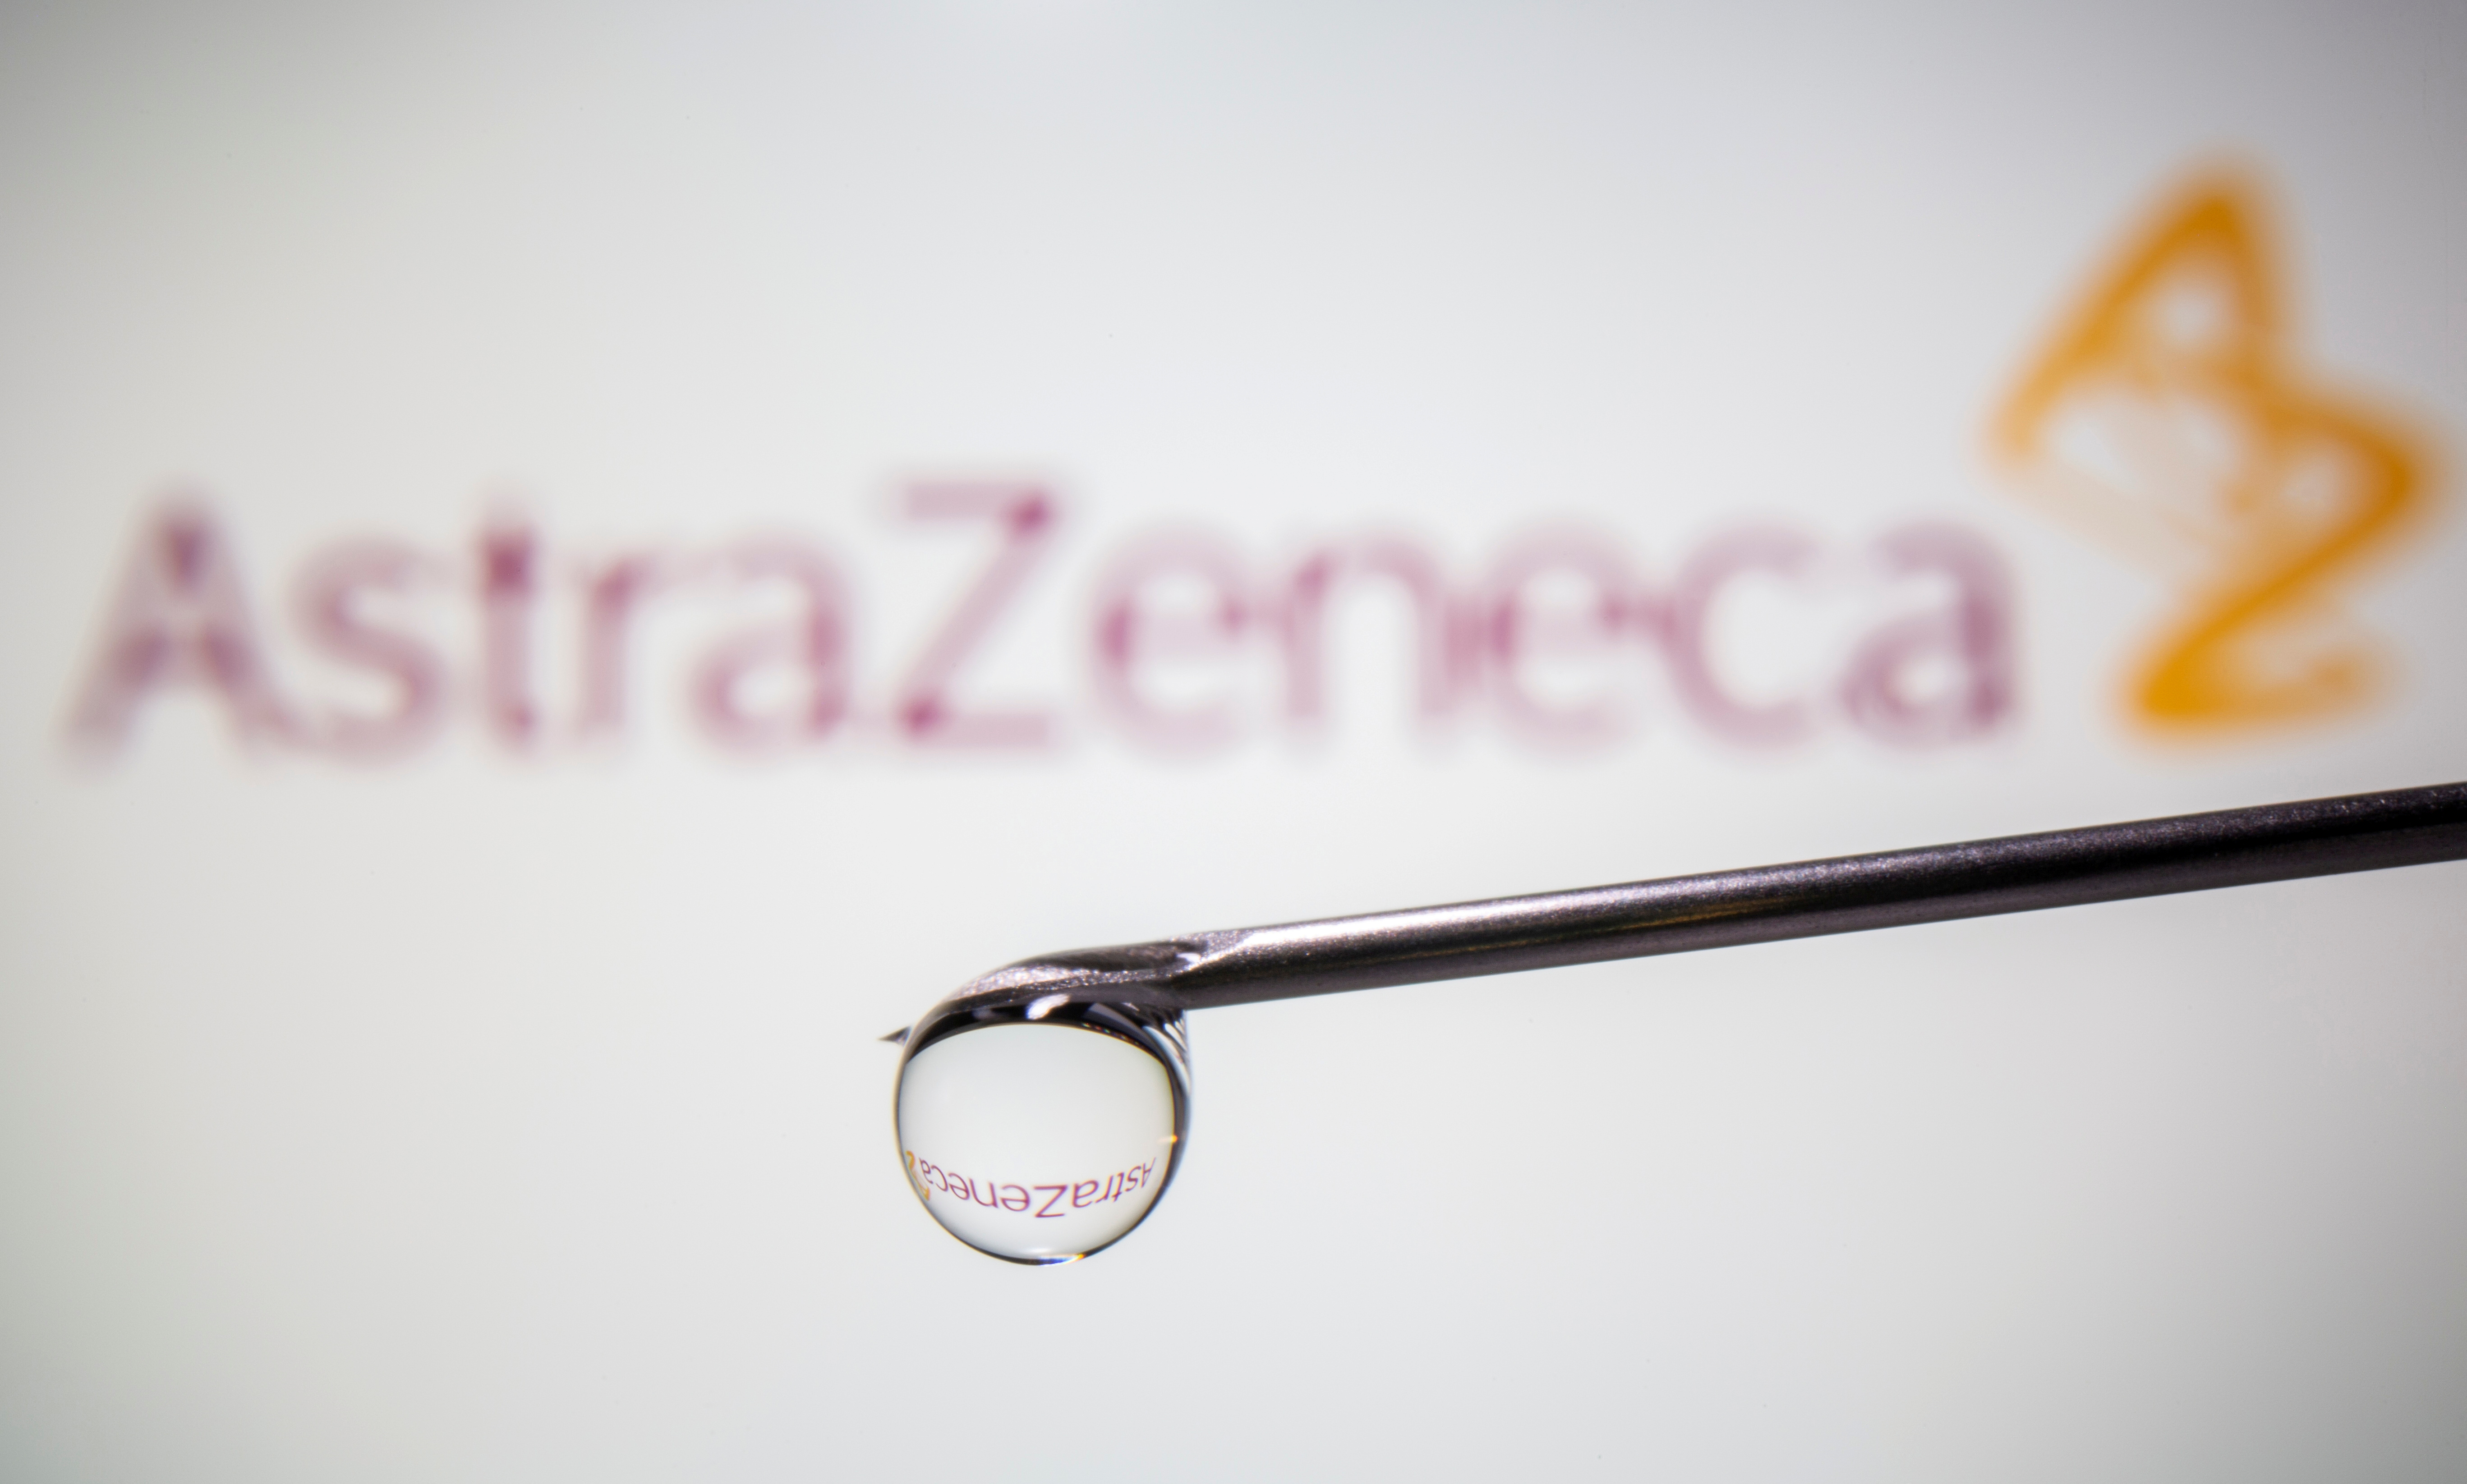 AstraZeneca's logo is reflected in a drop on a syringe needle in this illustration taken November 9, 2020. REUTERS/Dado Ruvic/Illustration/File Photo